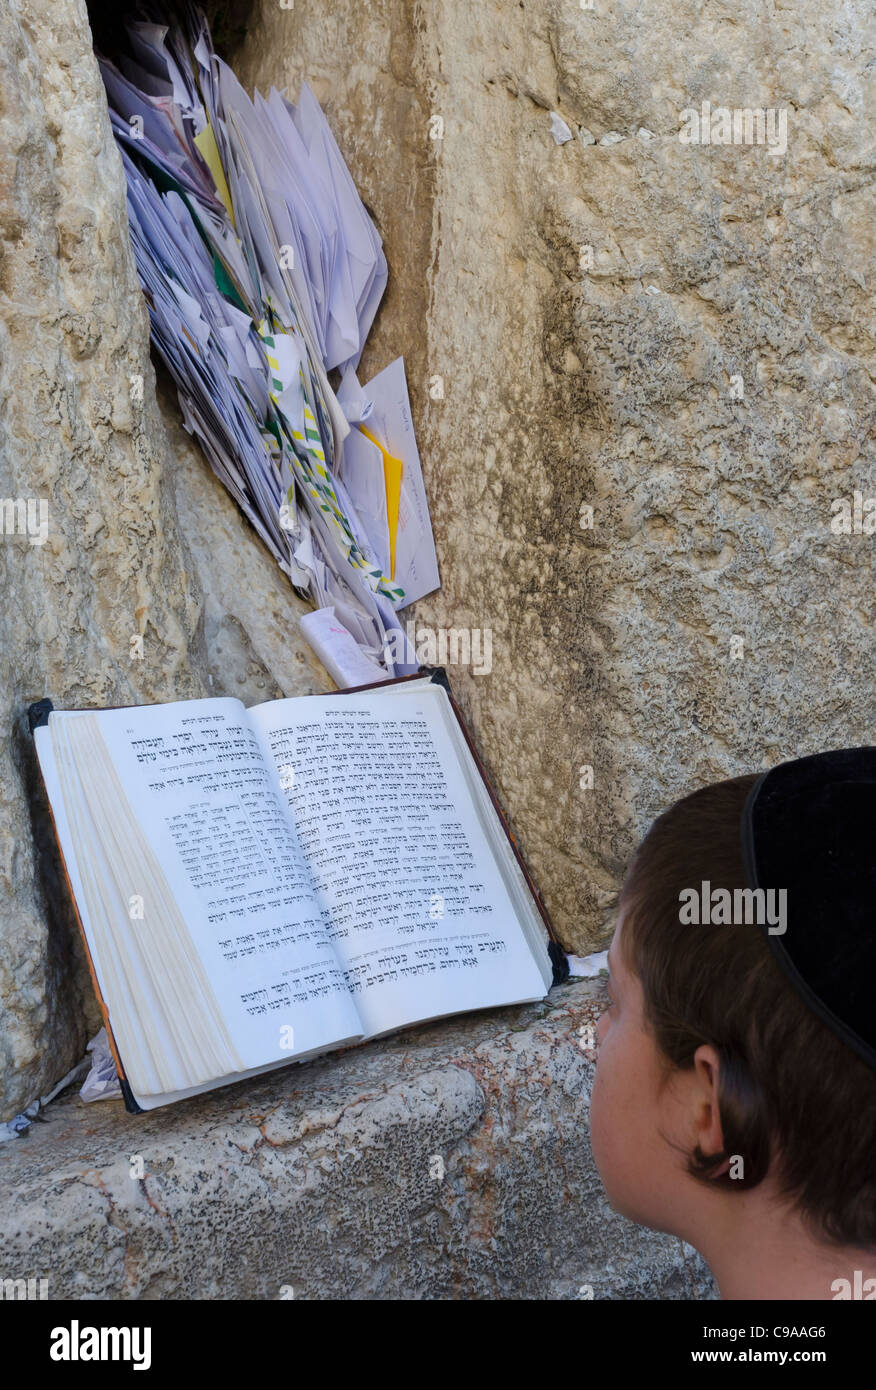 Young boy praying with paper notes in bkgd. Western Wall. israel - Stock Image